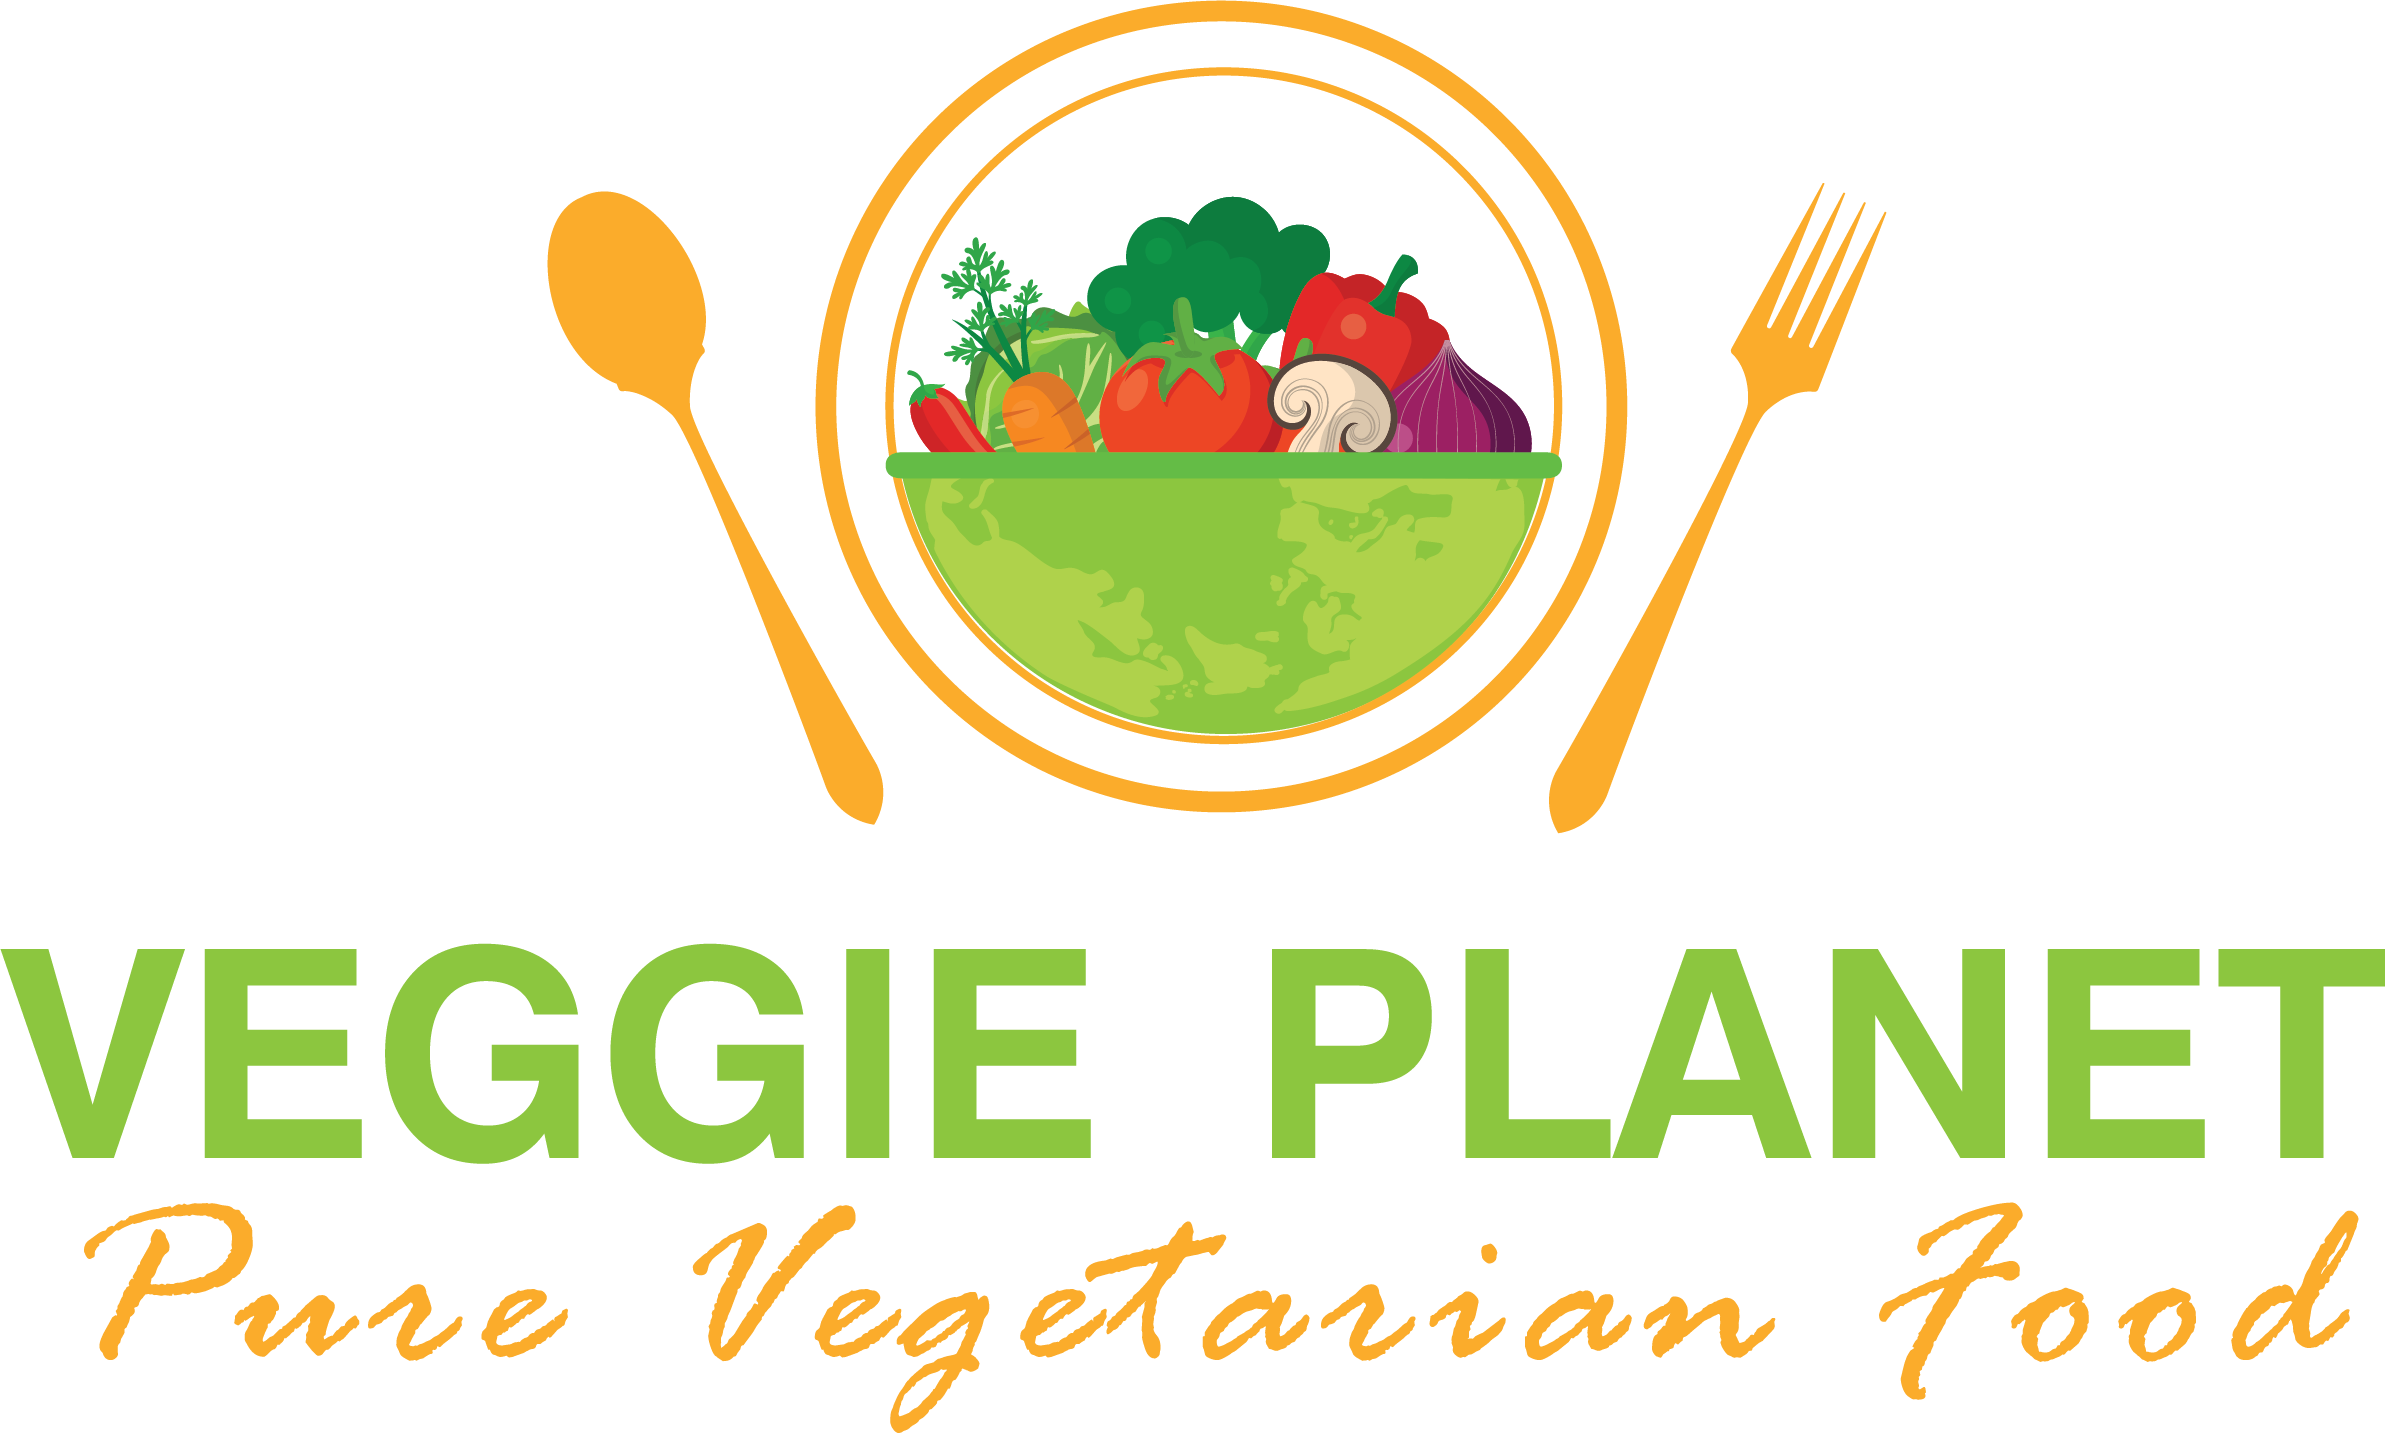 Vegan Planet Png - Download Best Vegan Food In Mississauga - Vegetarian Food Logo Png ...